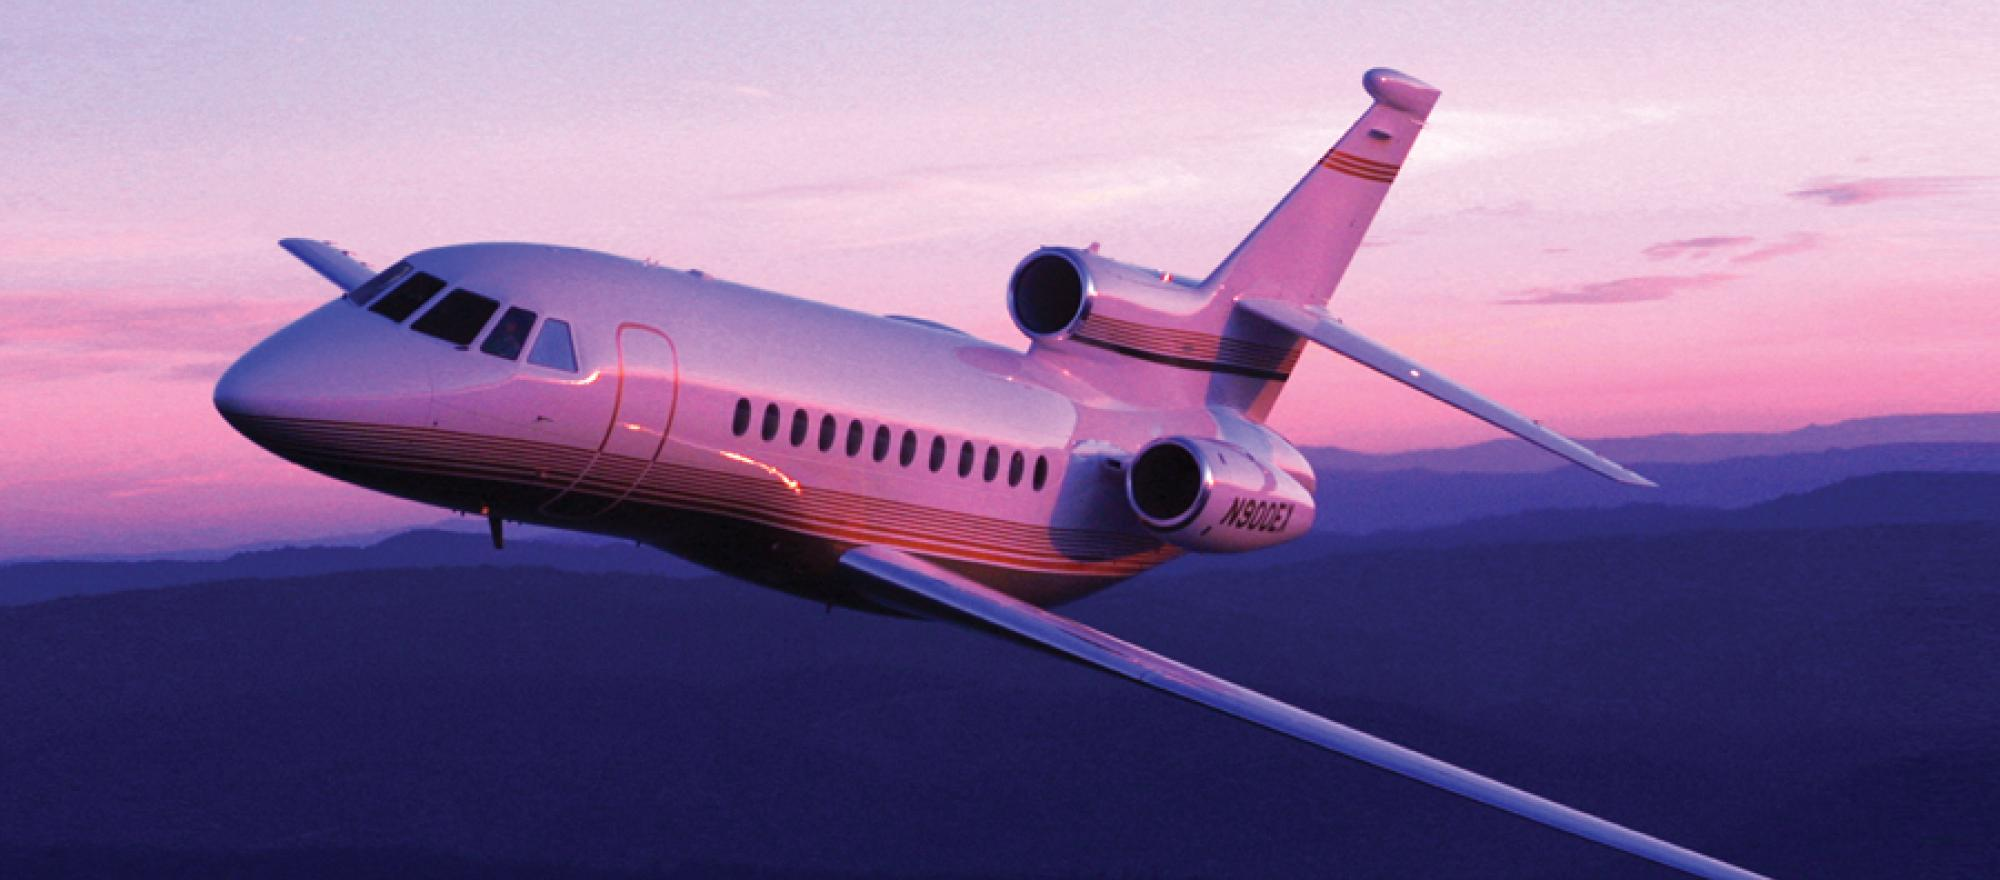 Cool jet airlines dassault falcon 900 dx interior - From Its Three Engine Layout To Its Advanced Computer Design To Its Construction Using Lightweight Alloys And Composites The 900 Series Is Truly Peerless